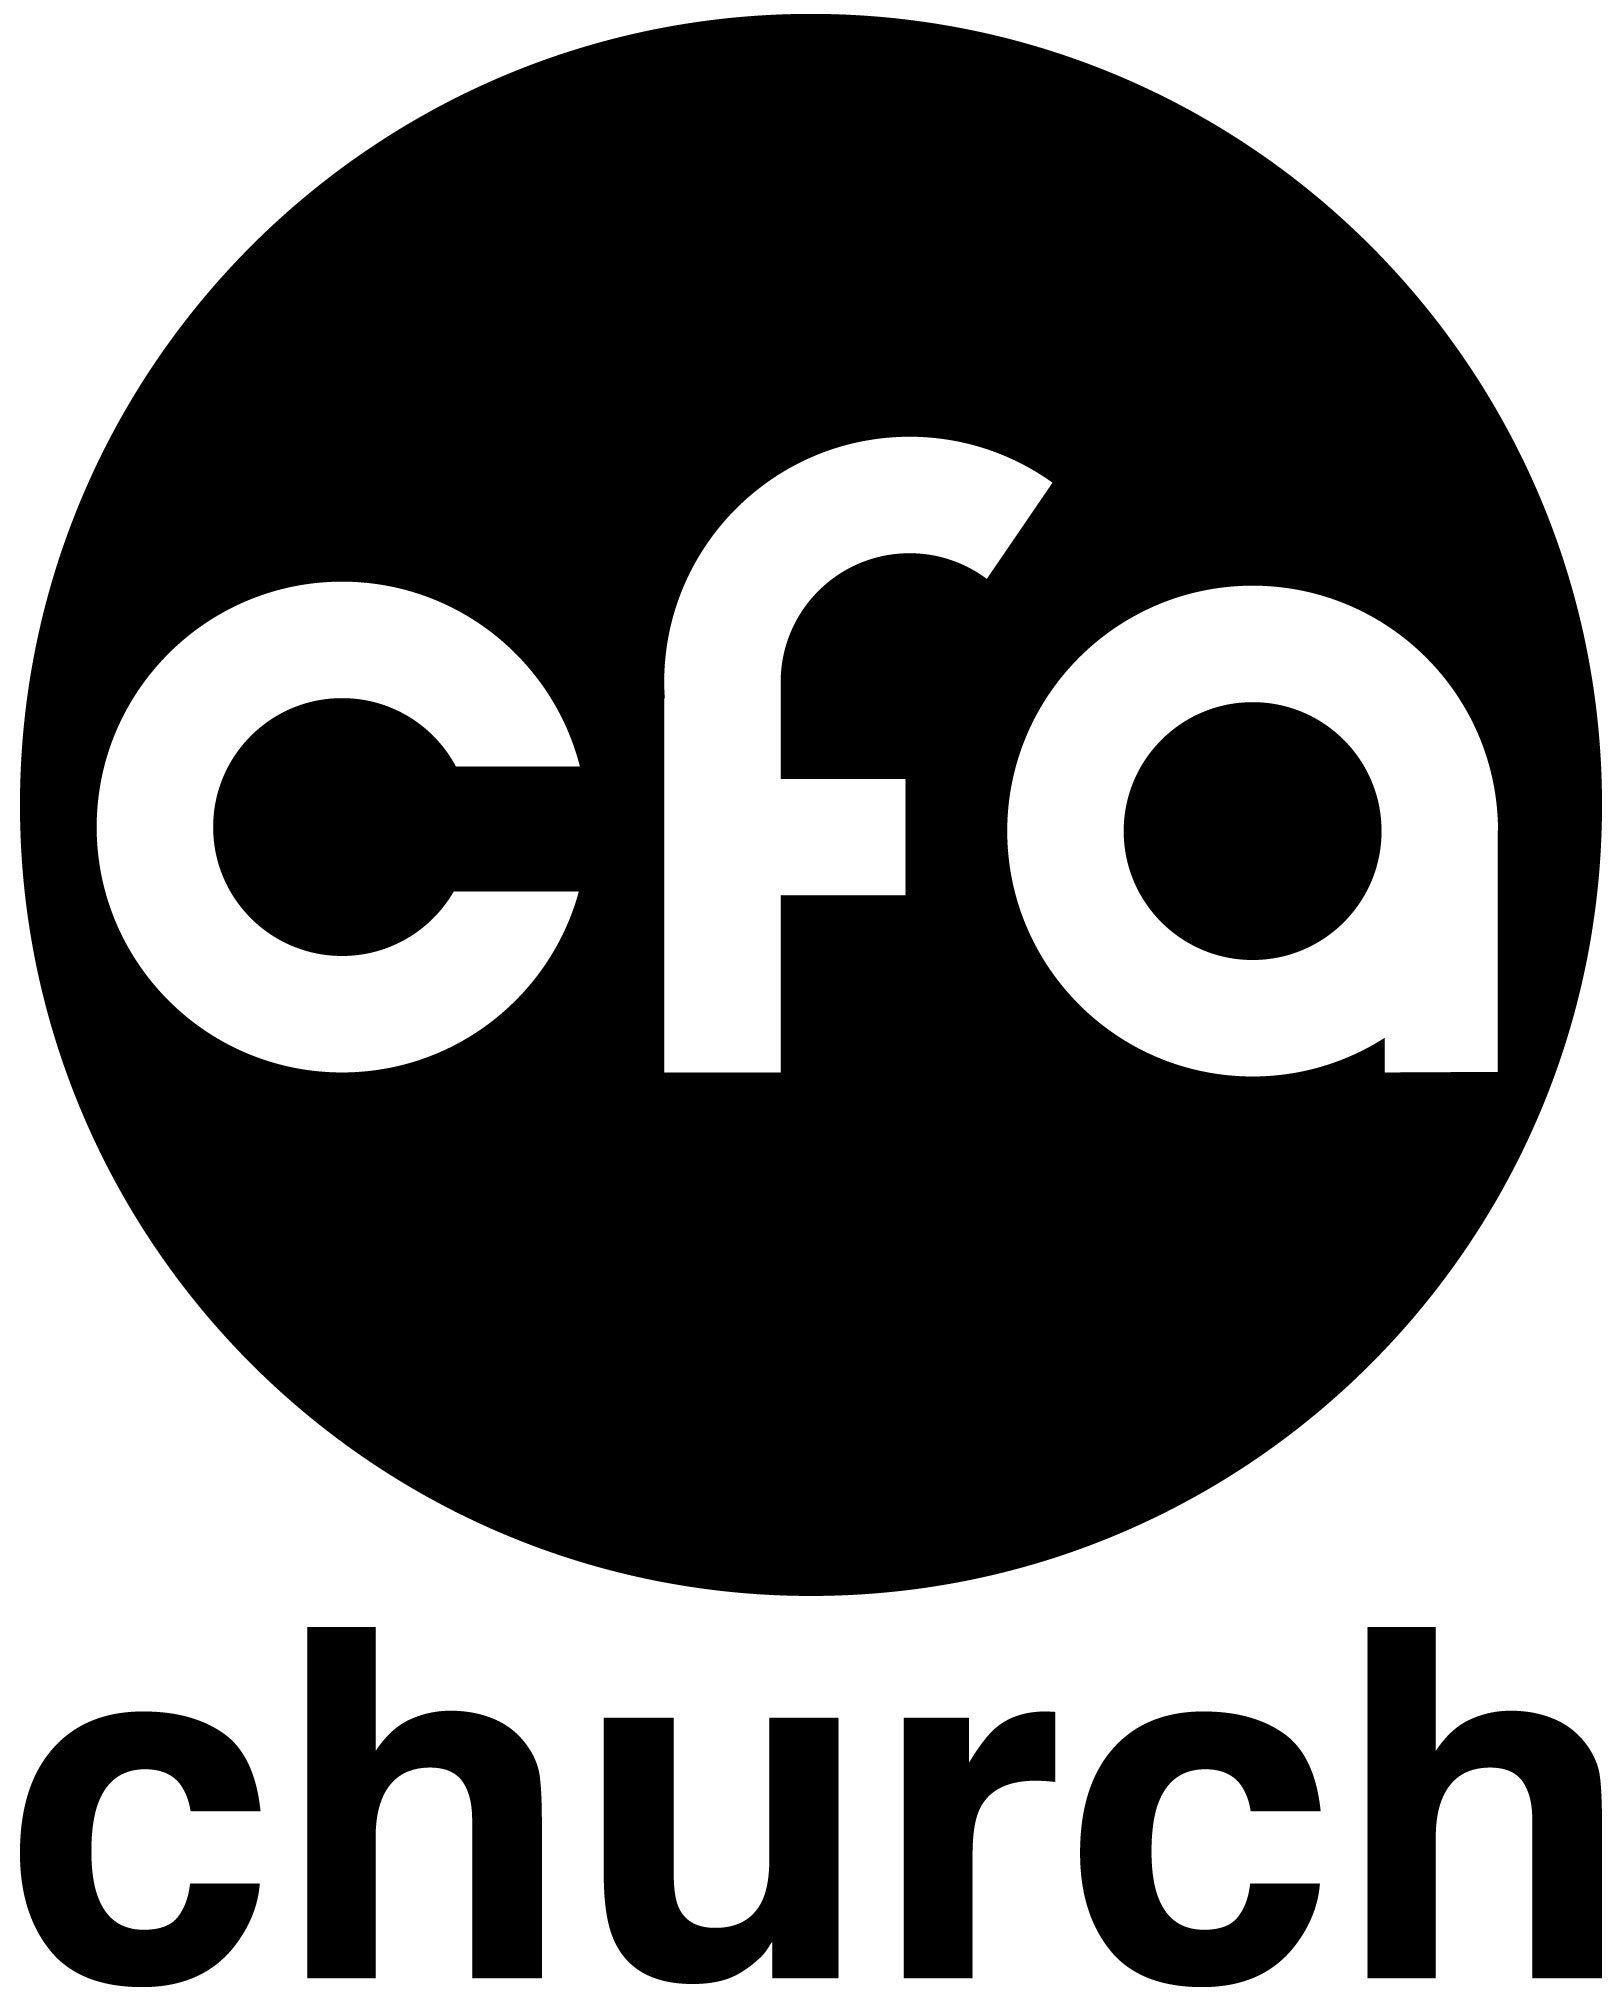 cfa Church